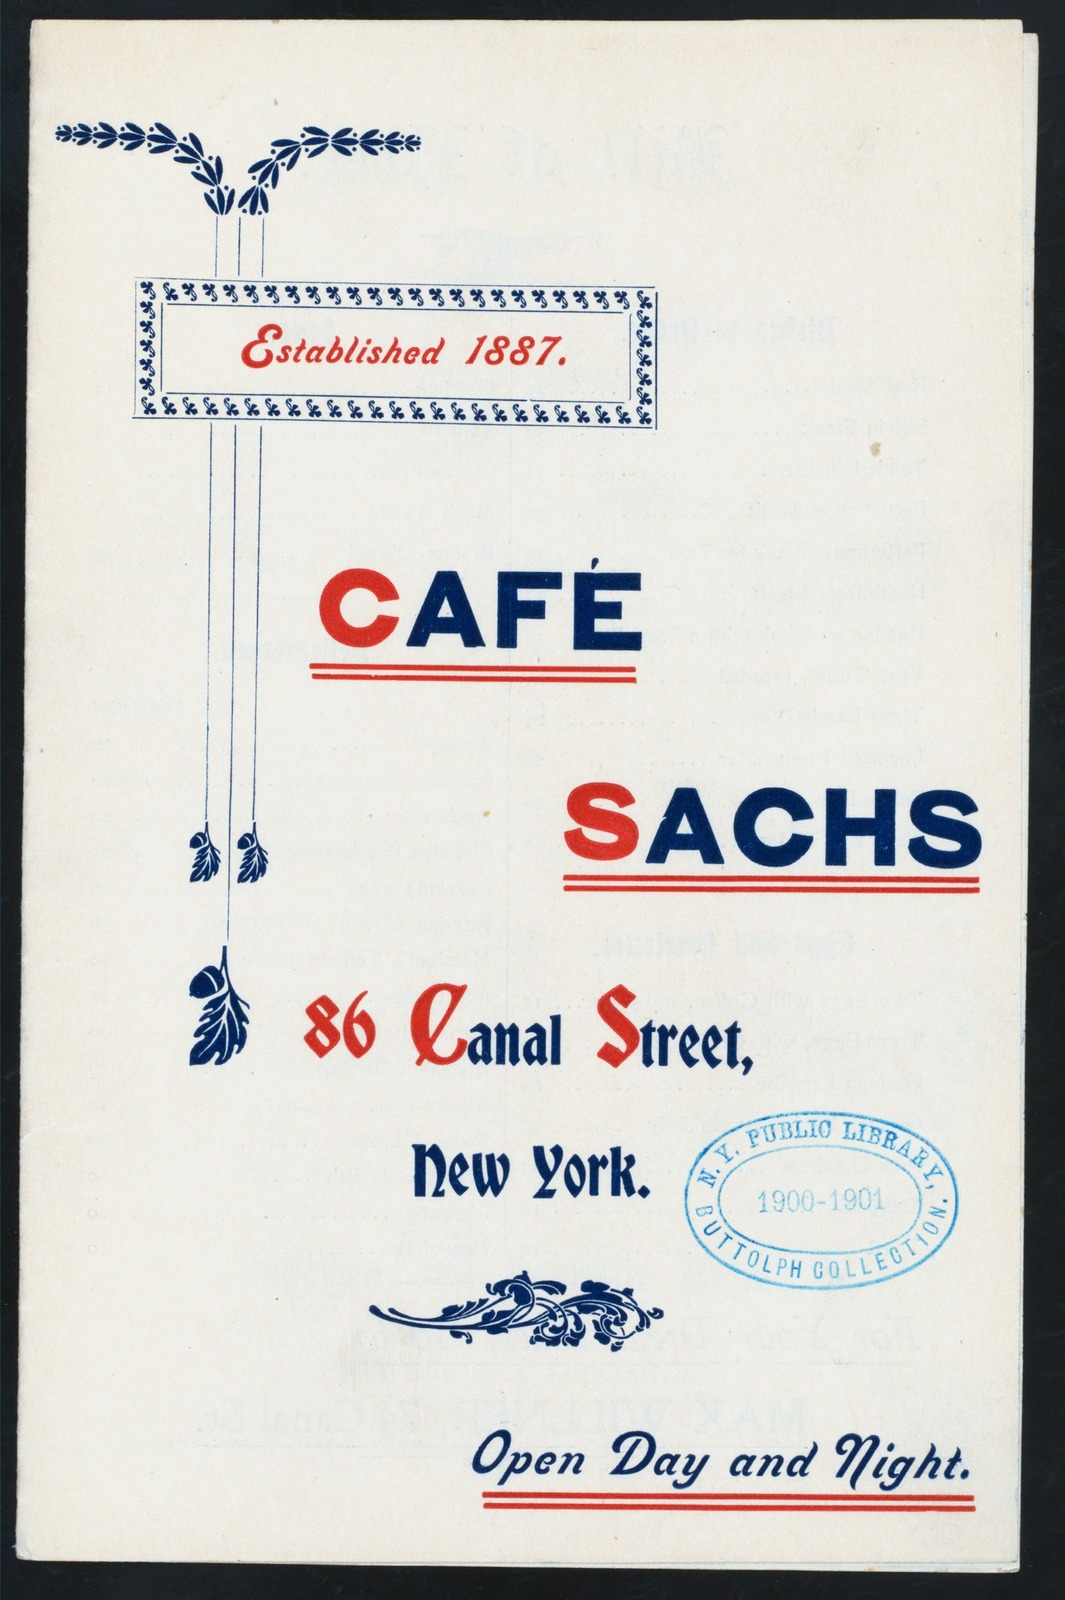 """DAILY MENU [held by] CAFE SACHS [at] """"86 CANAL STREET, NY"""" (REST;)"""